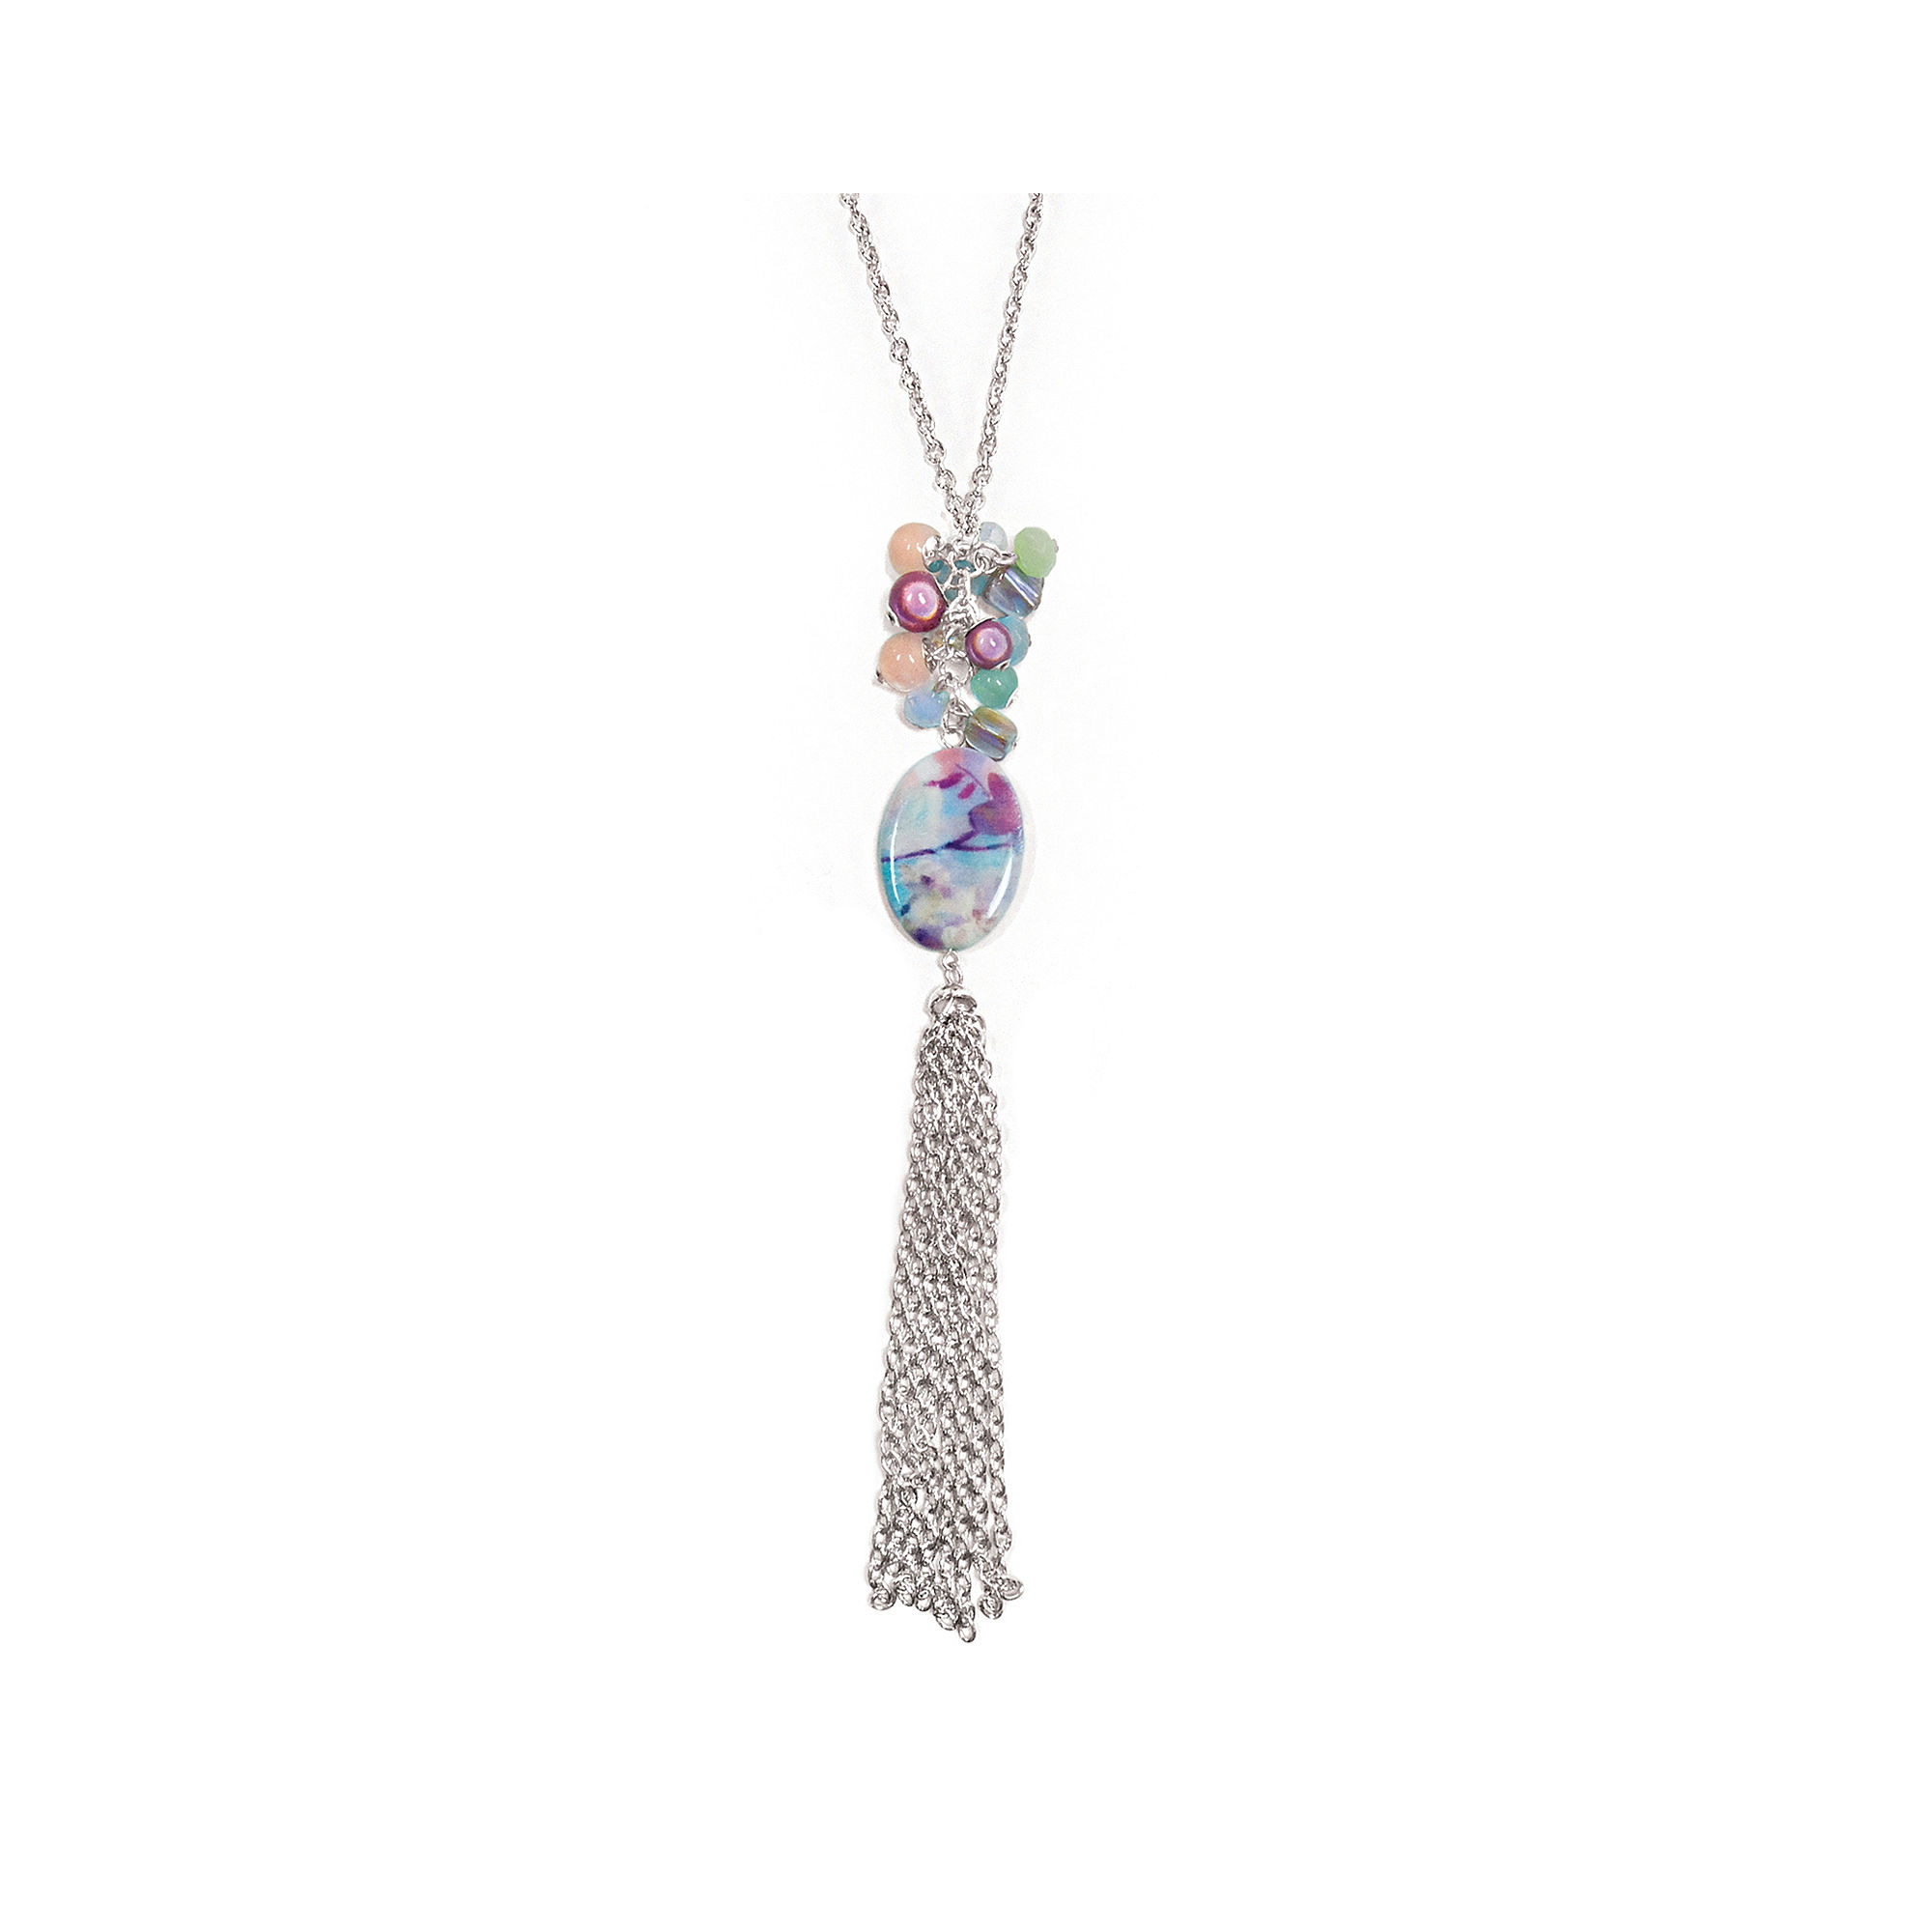 Studio By Carol Dauplaise Pink Shell Silver-Tone Chain Tassel Necklace